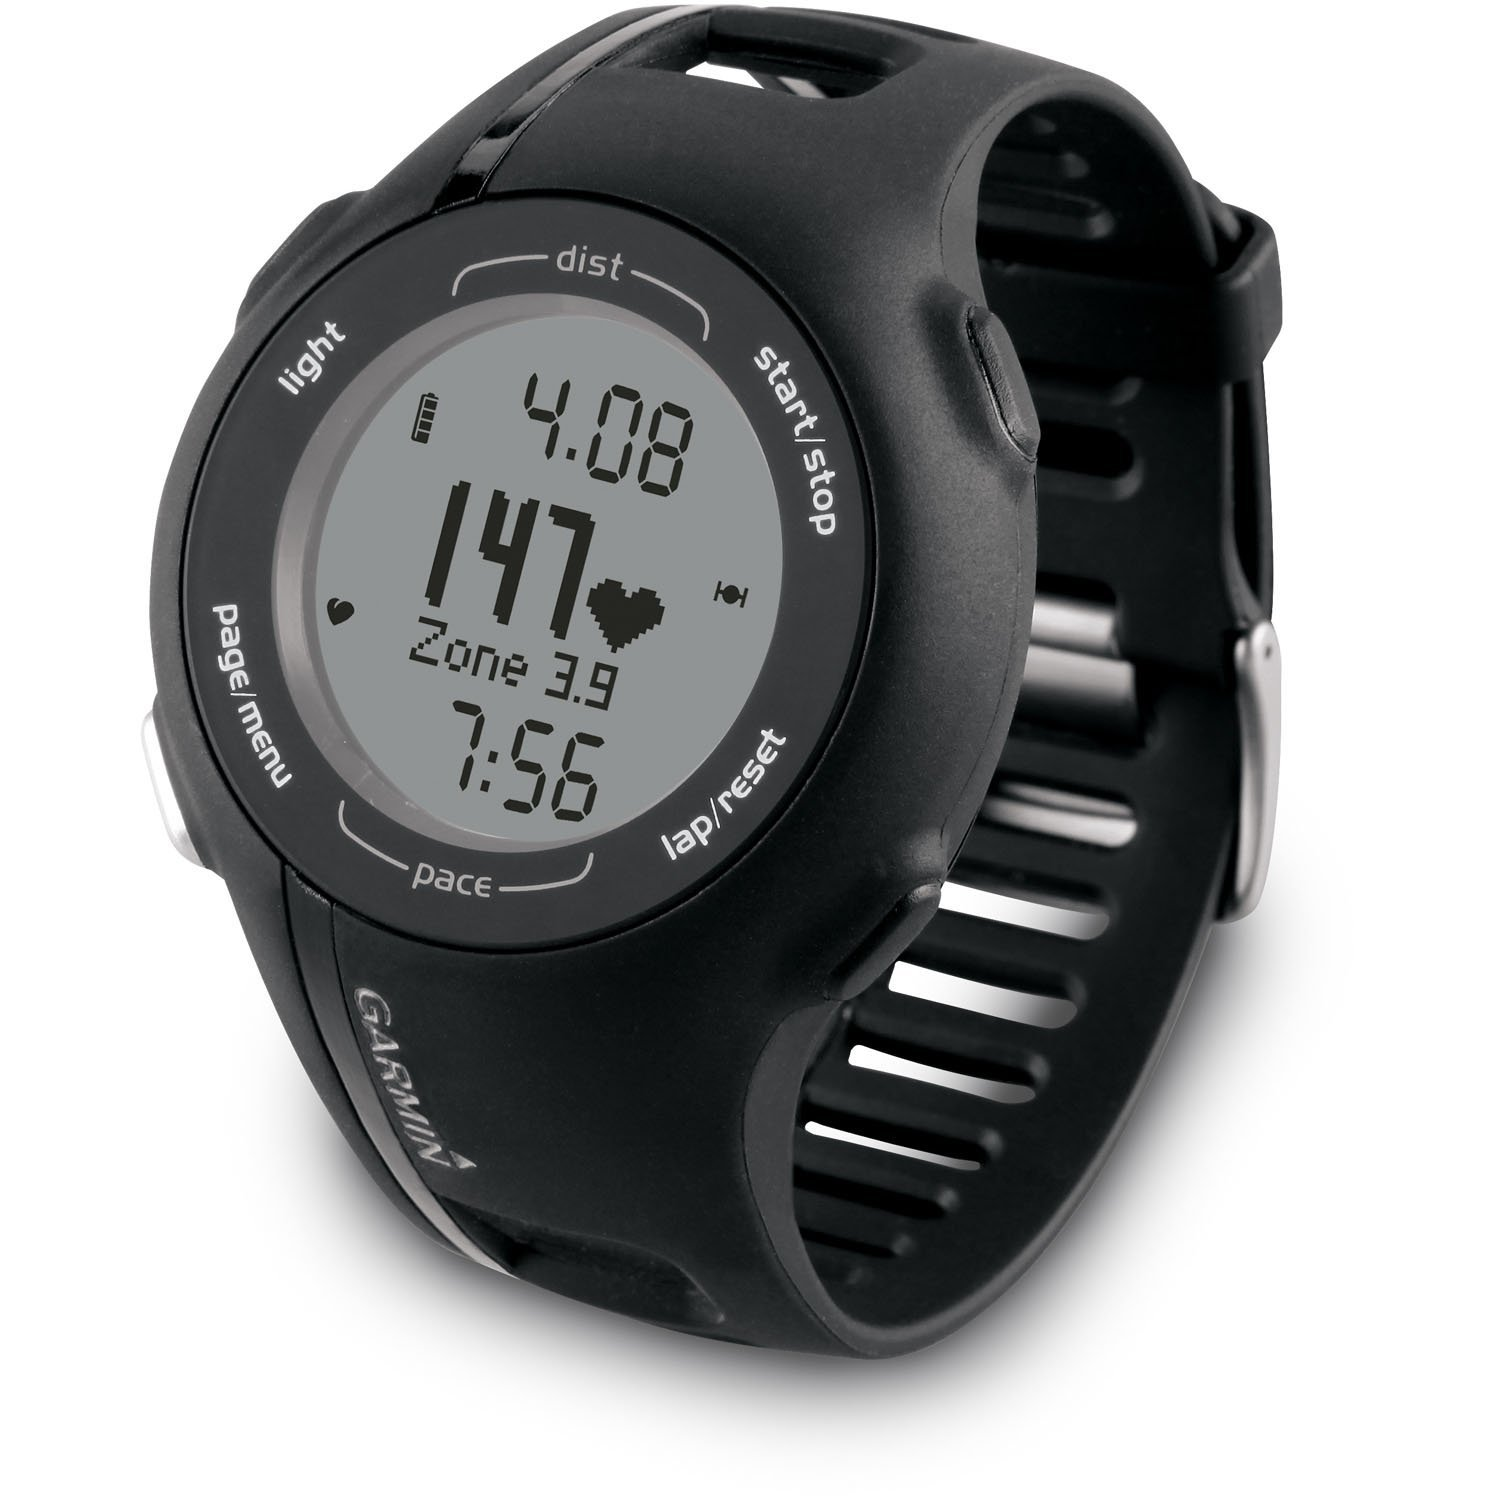 Garmin Forerunner 210 Watch Only